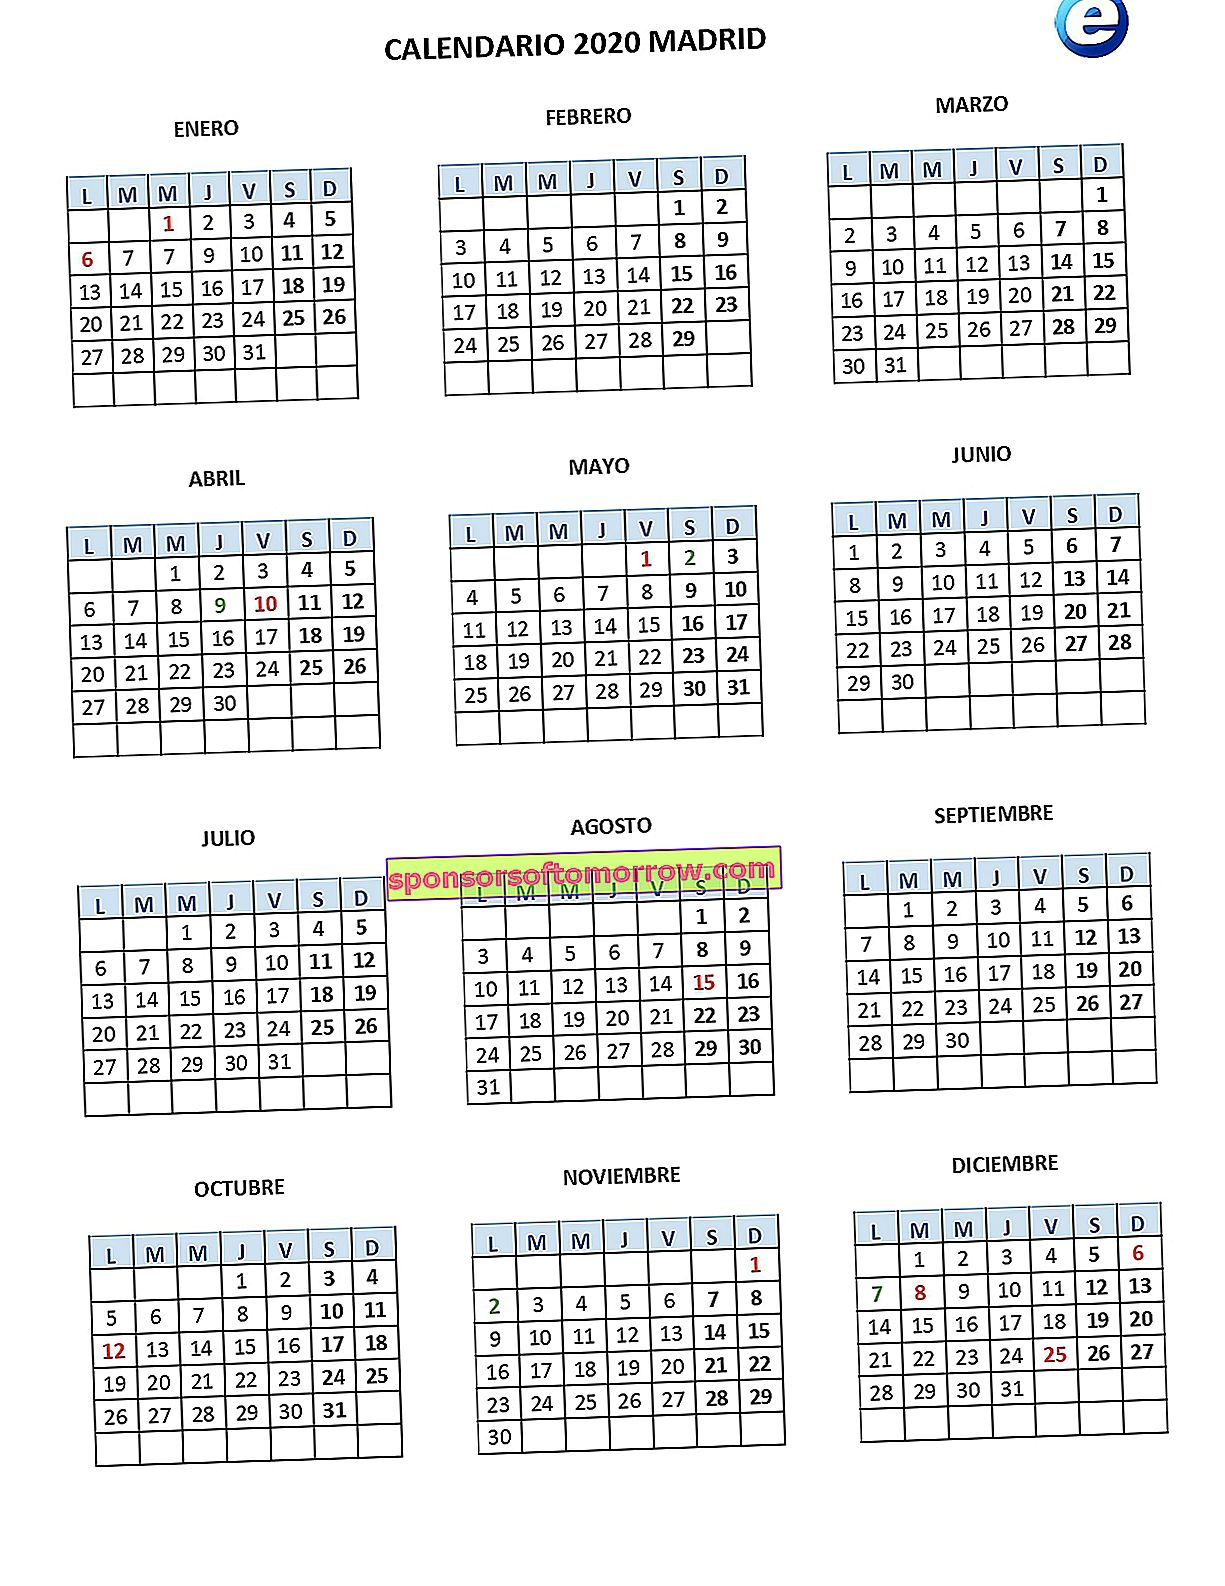 Madrid CALENDAR 2020_pages-to-jpg-0001